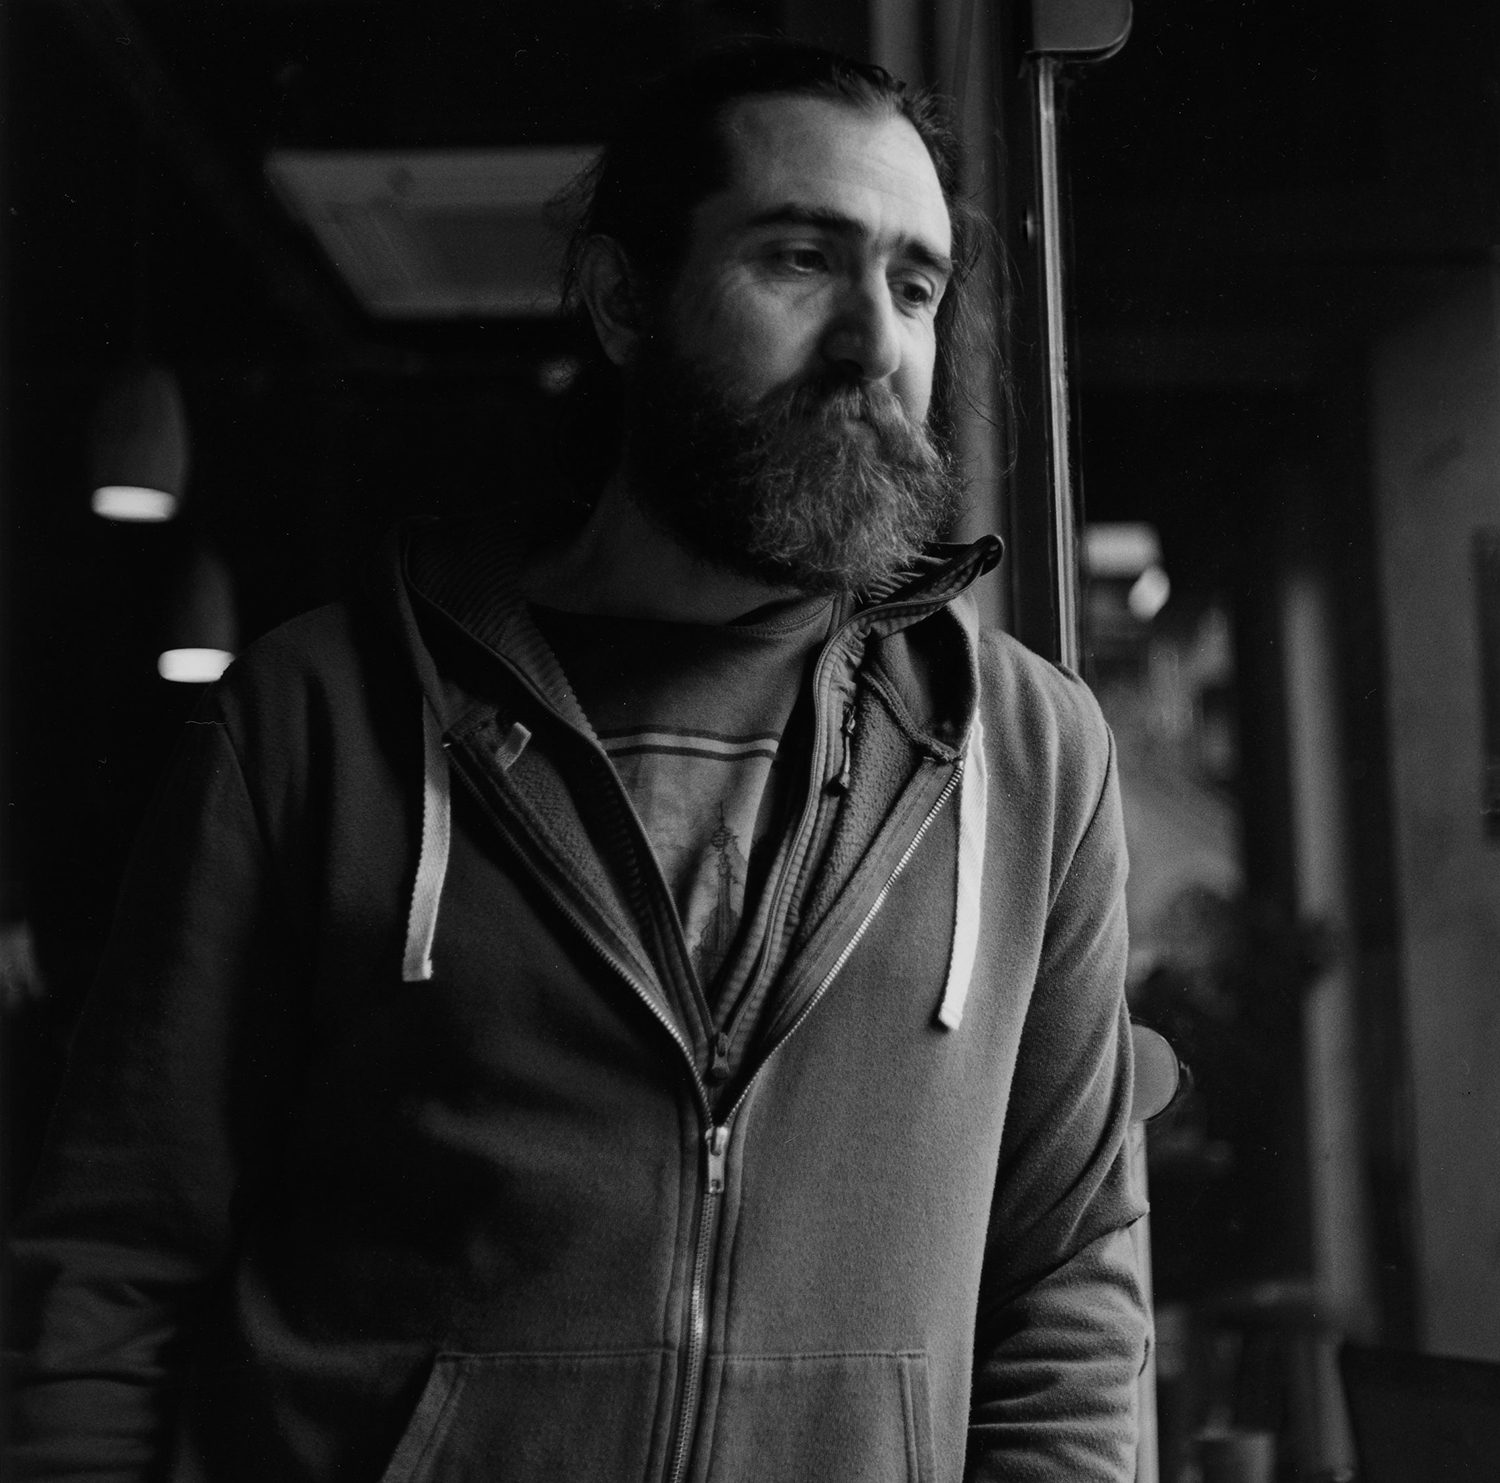 Portrait of a man in a cafe shot on ILFORD black and white film by Keith Moss